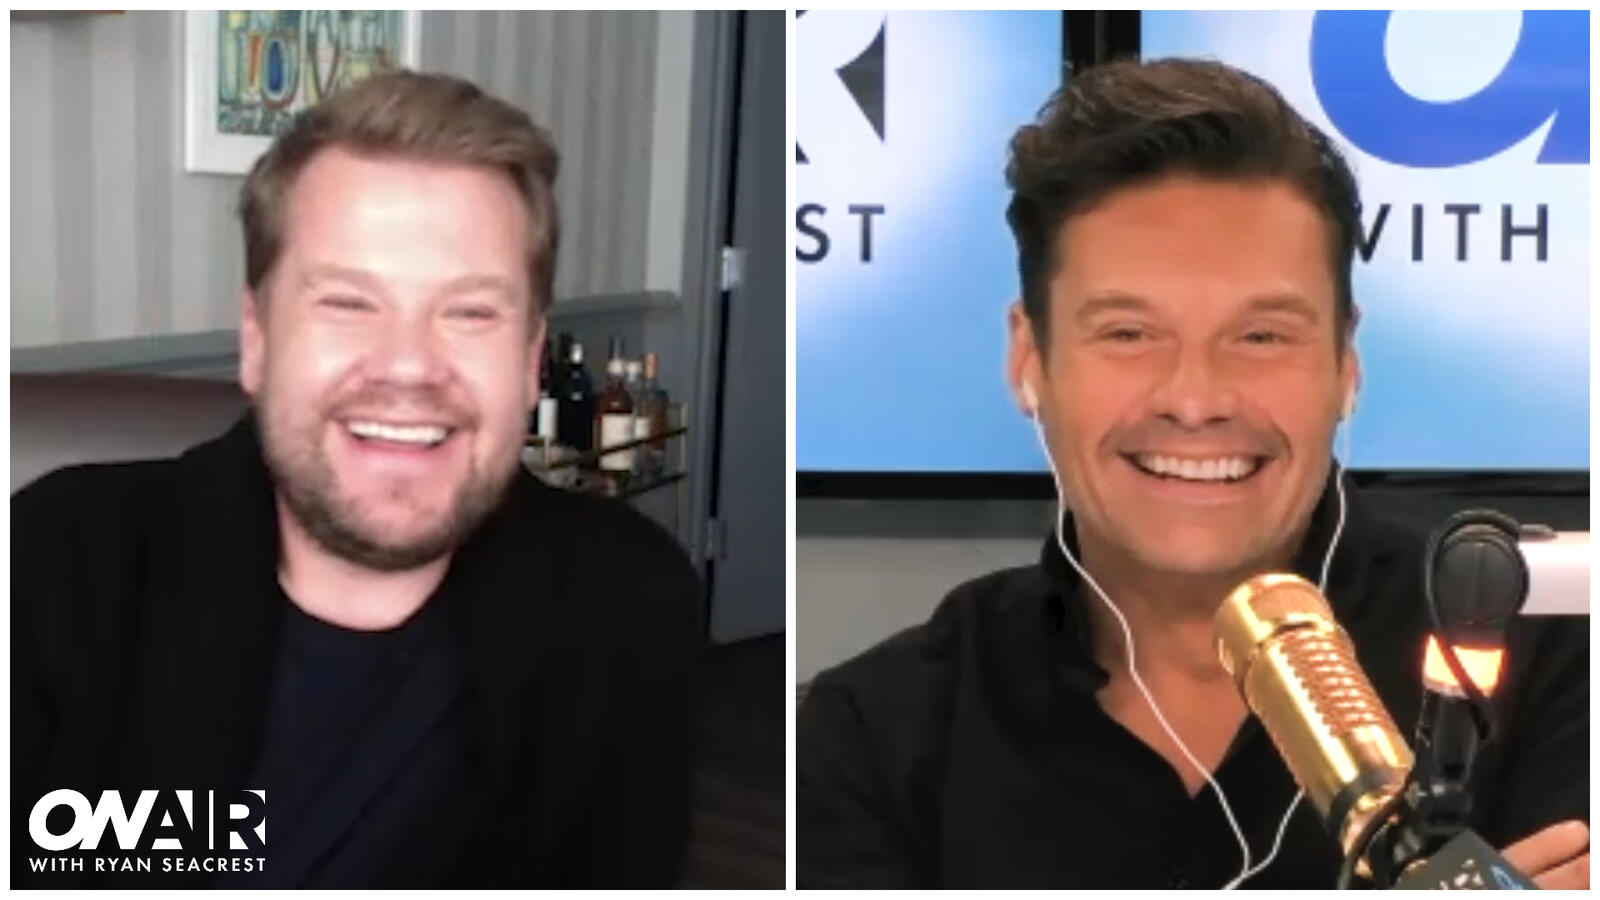 James Corden Hilariously Roasts Ryan Seacrest Over His Gold Microphone